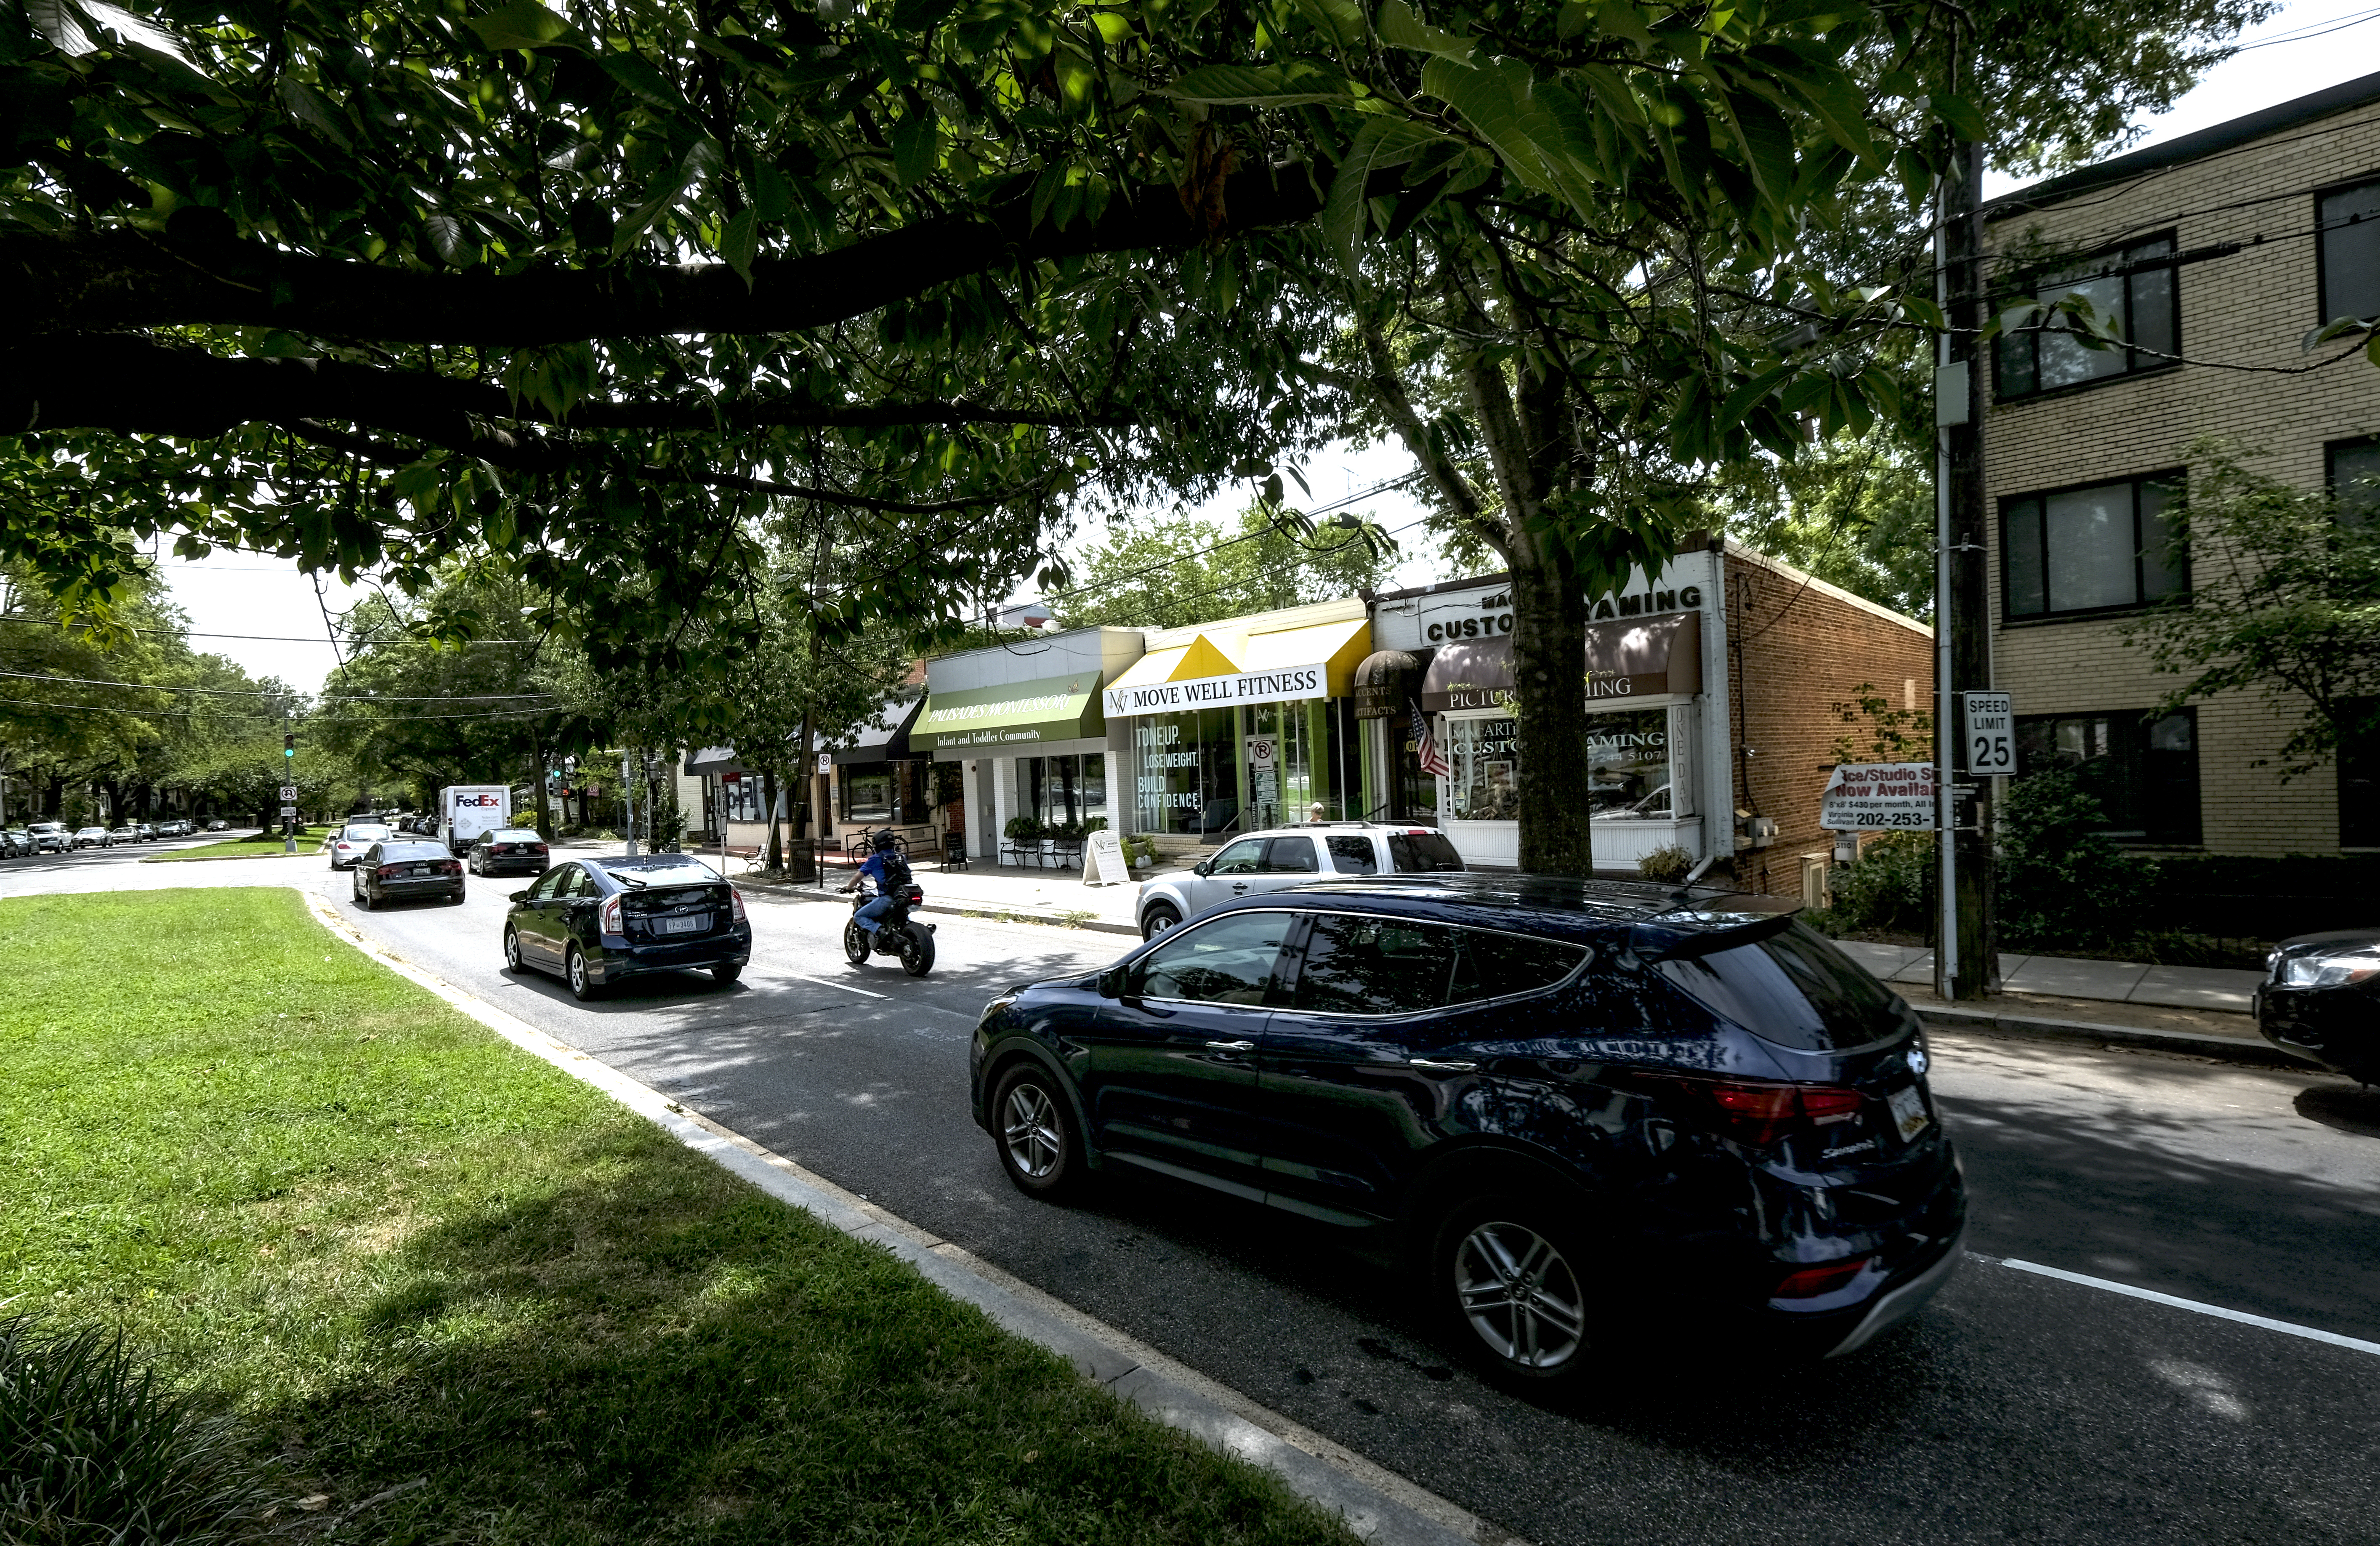 D.C. is finalizing recommendations for traffic calming in the city's westernmost area